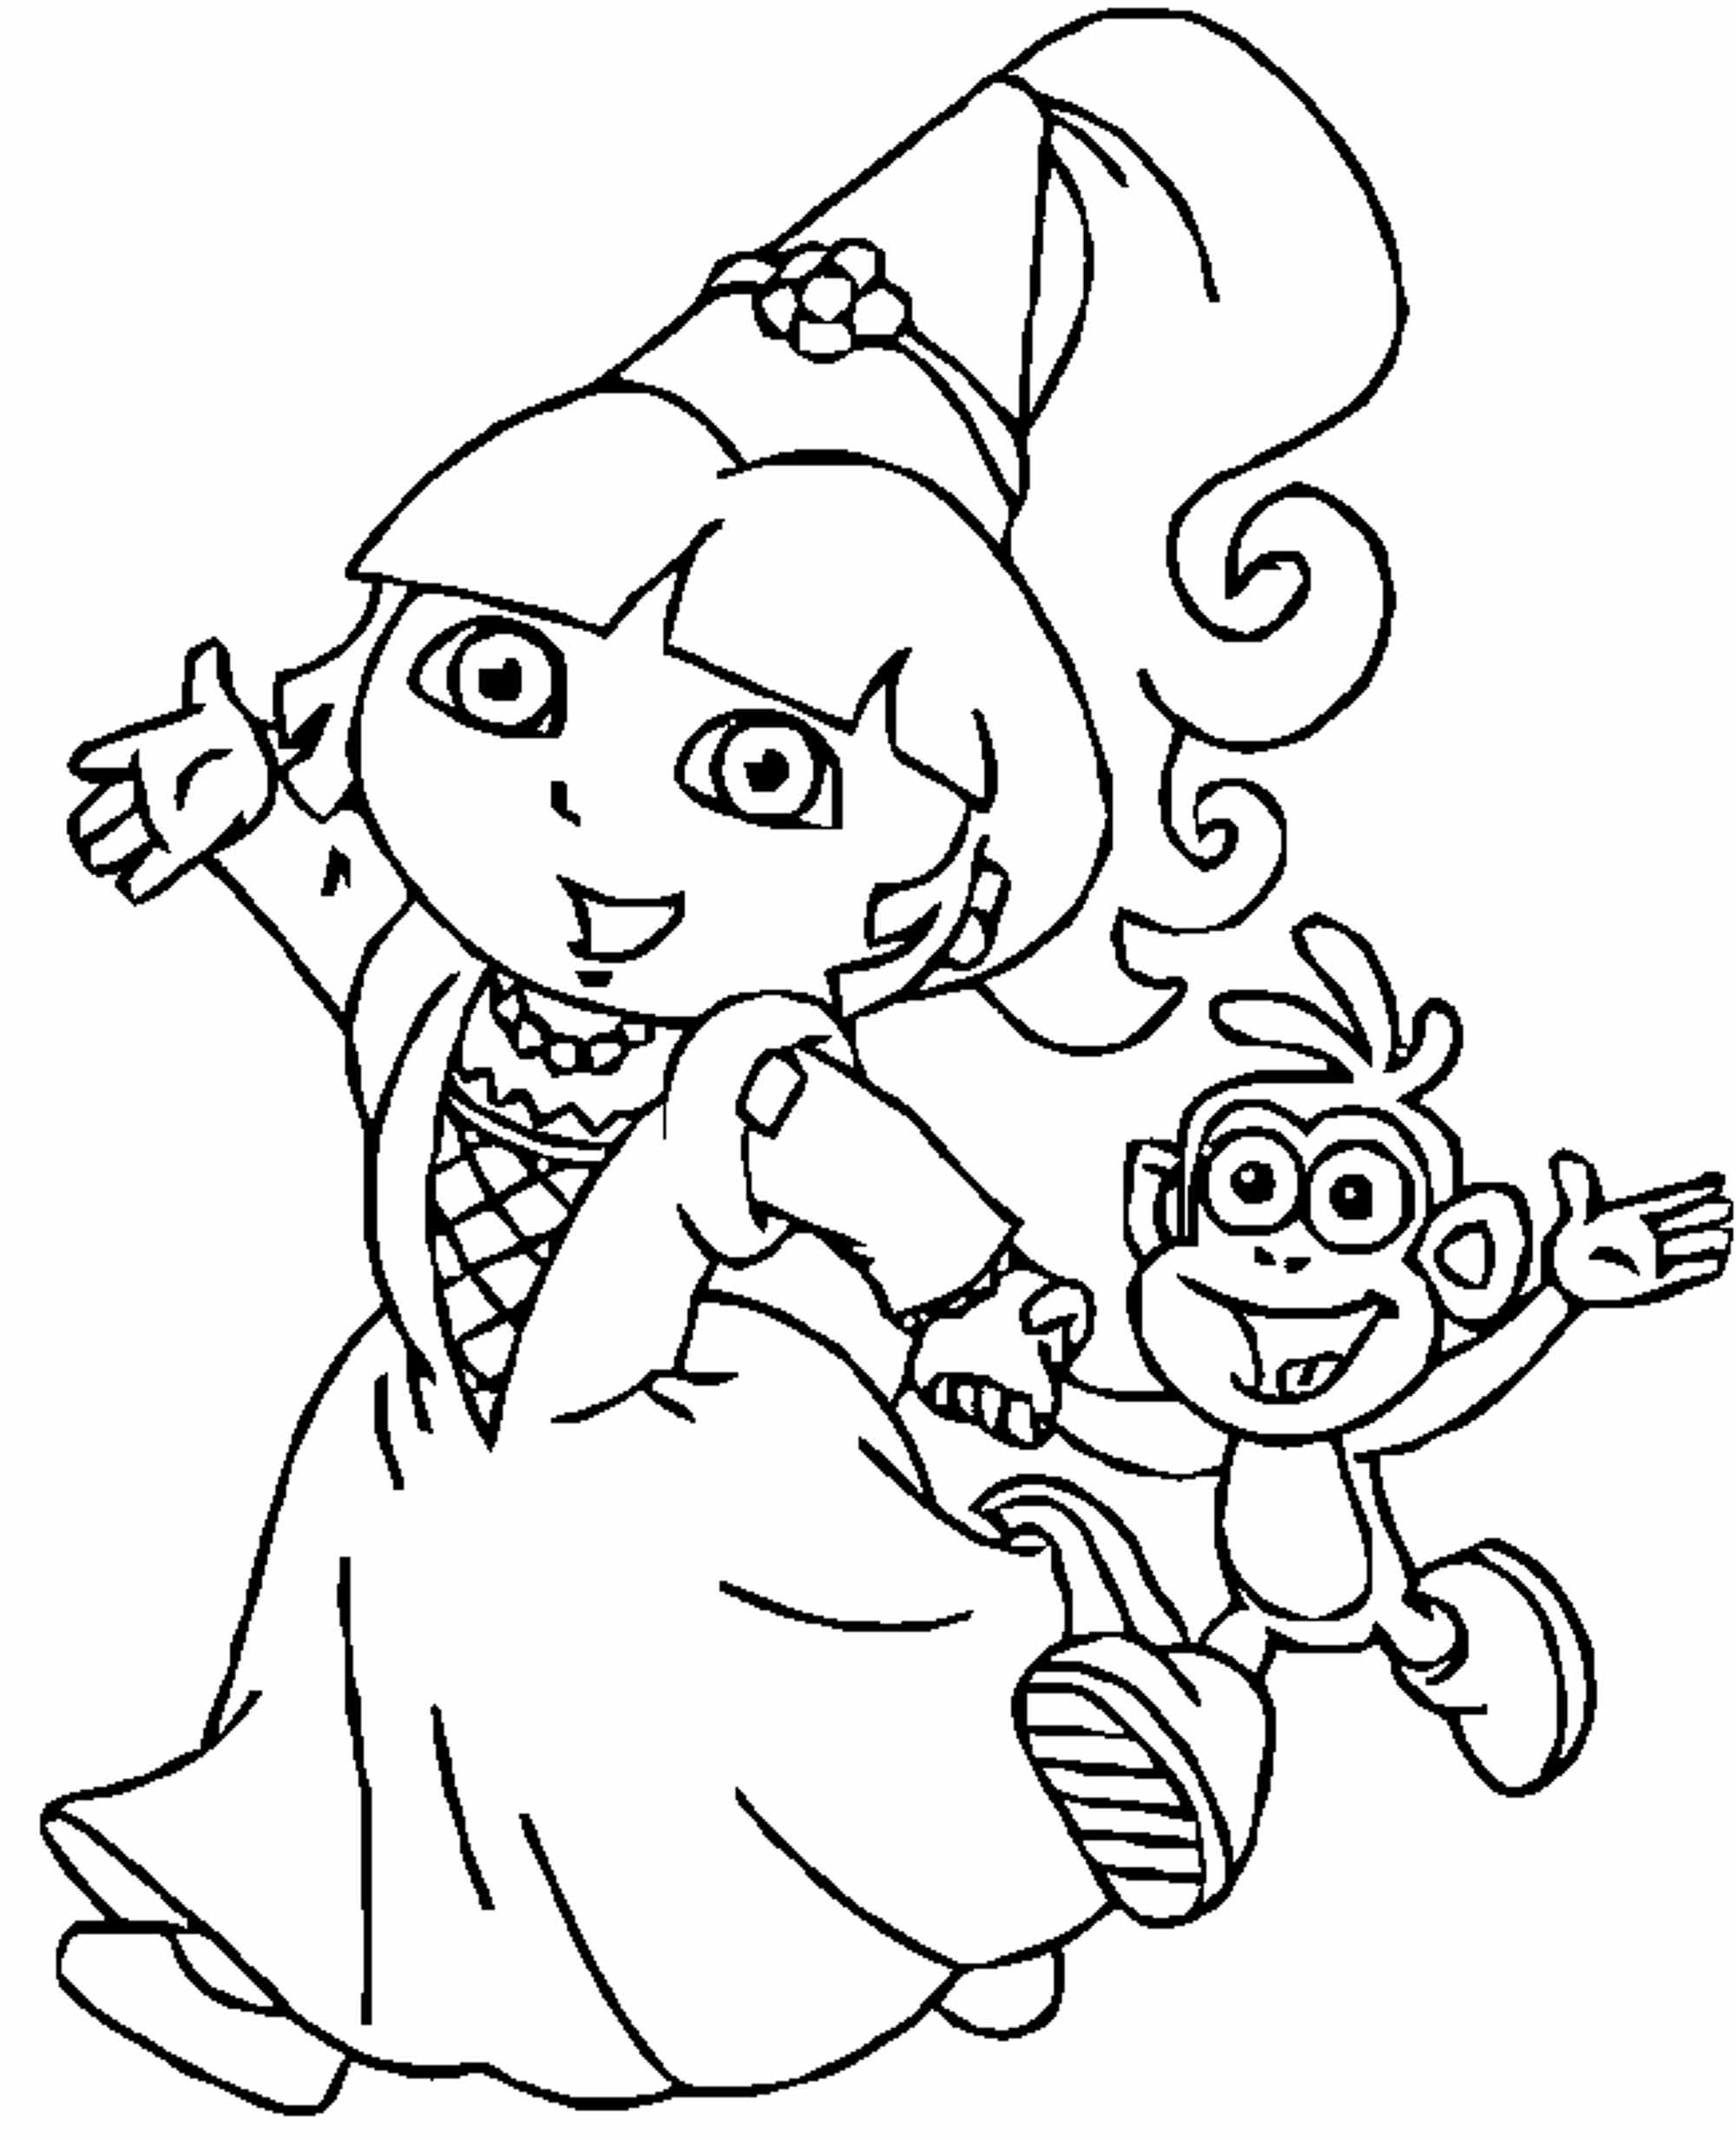 dora colouring pictures dora coloring pages cutecoloringcom dora pictures colouring